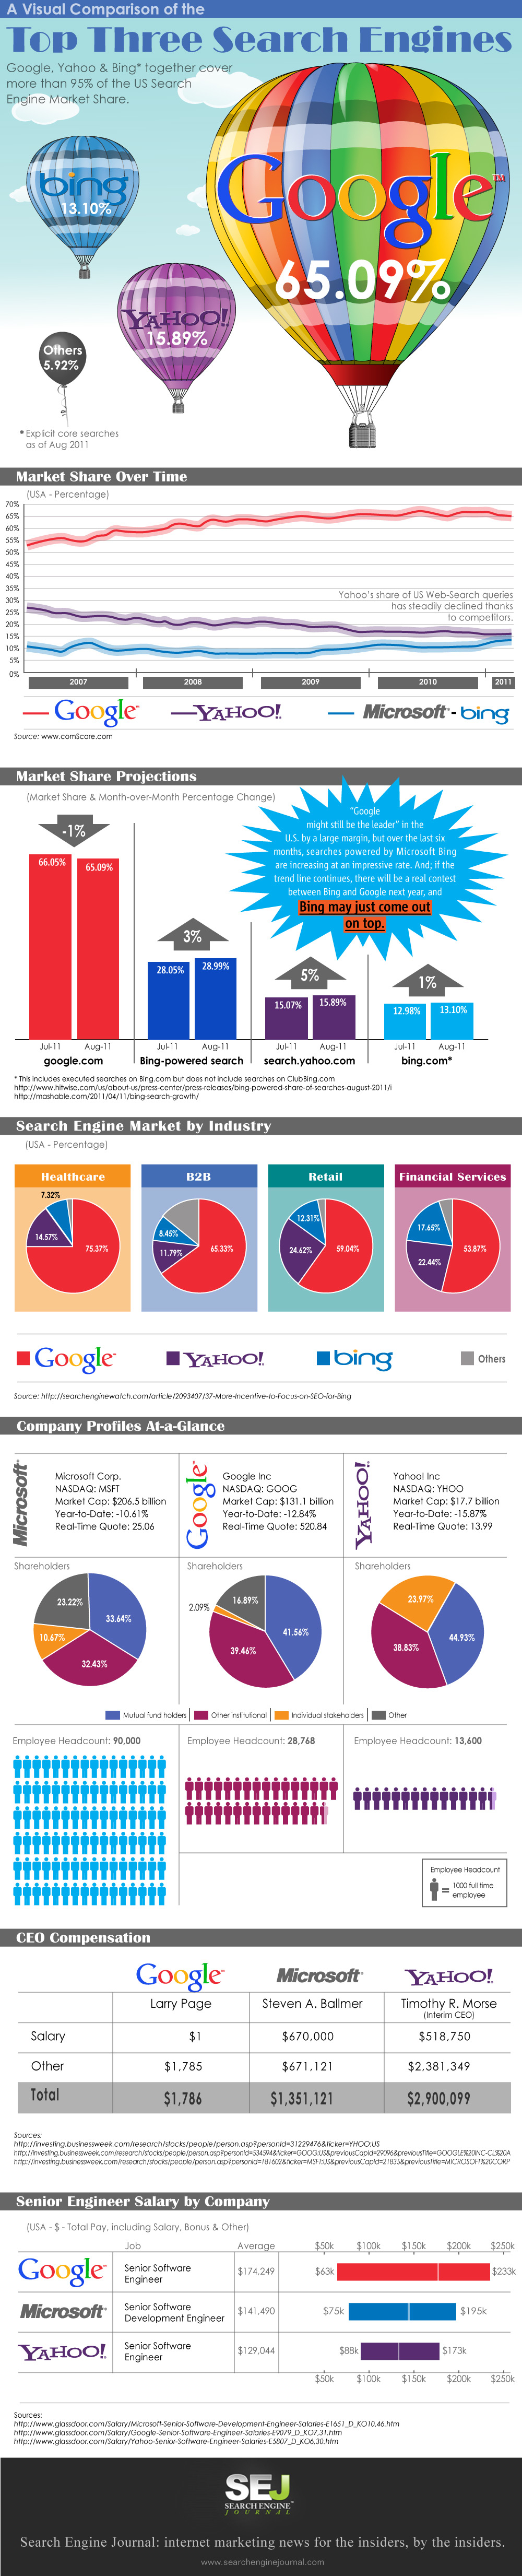 What Search Engine Comes Out On Top Sej Infographic Social Media Infographic Infographic Marketing Search Engine Marketing